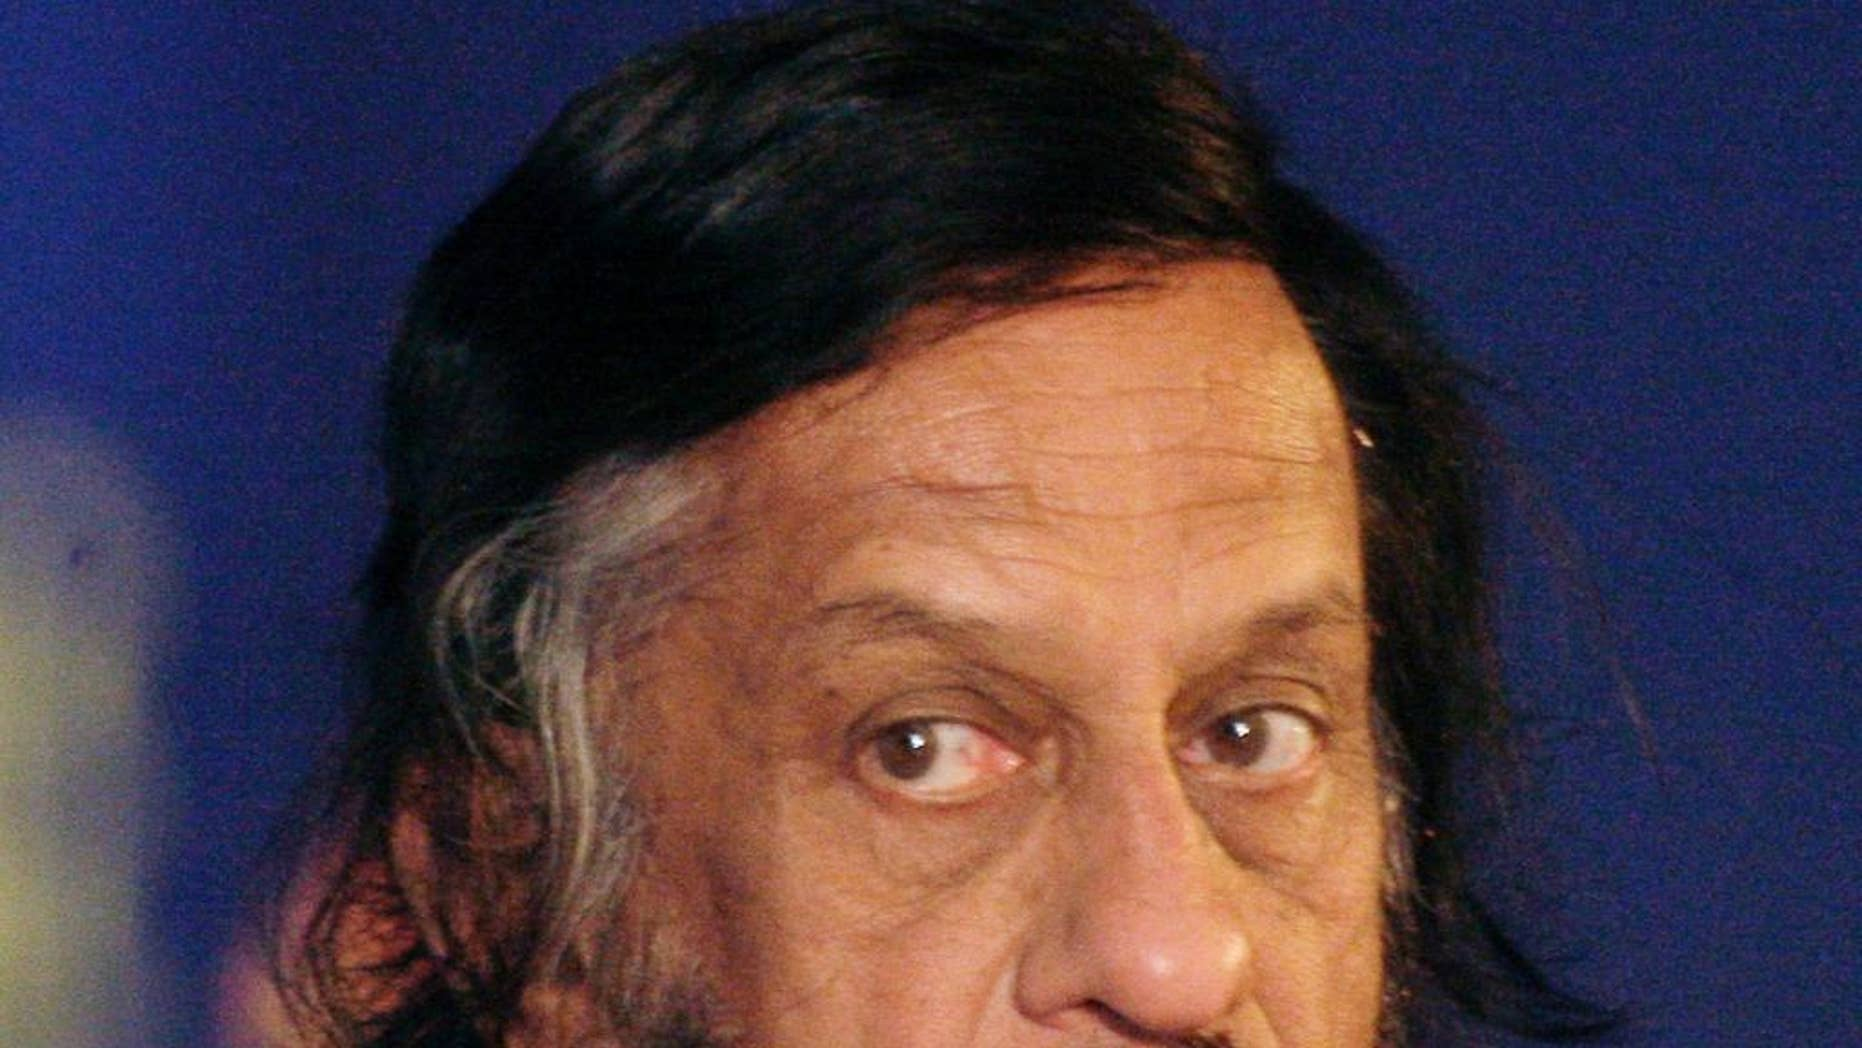 In this Feb. 6, 2010 file photo, Intergovernmental Panel on Climate Change Chairman Rajendra Pachauri listens to a speaker at the Delhi Sustainable Development Summit in New Delhi, India.